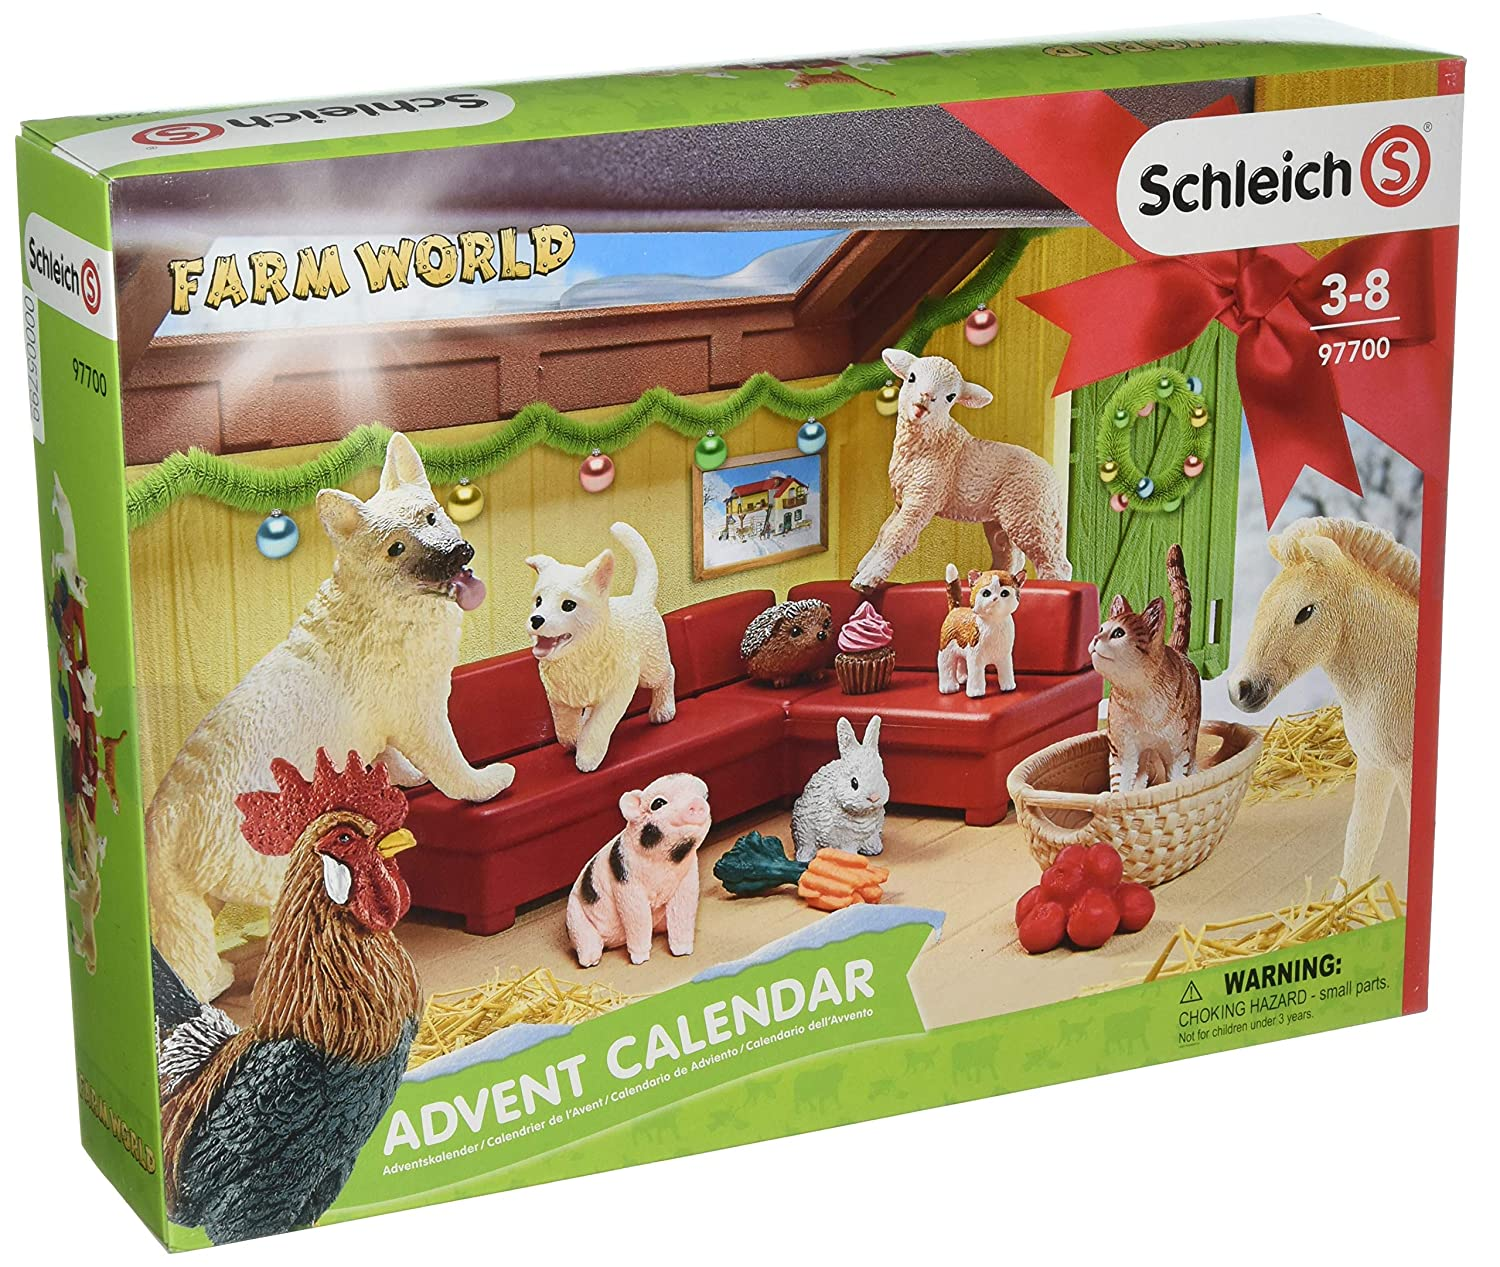 Schleich 97700 Farm World 2018 Advent Calendar